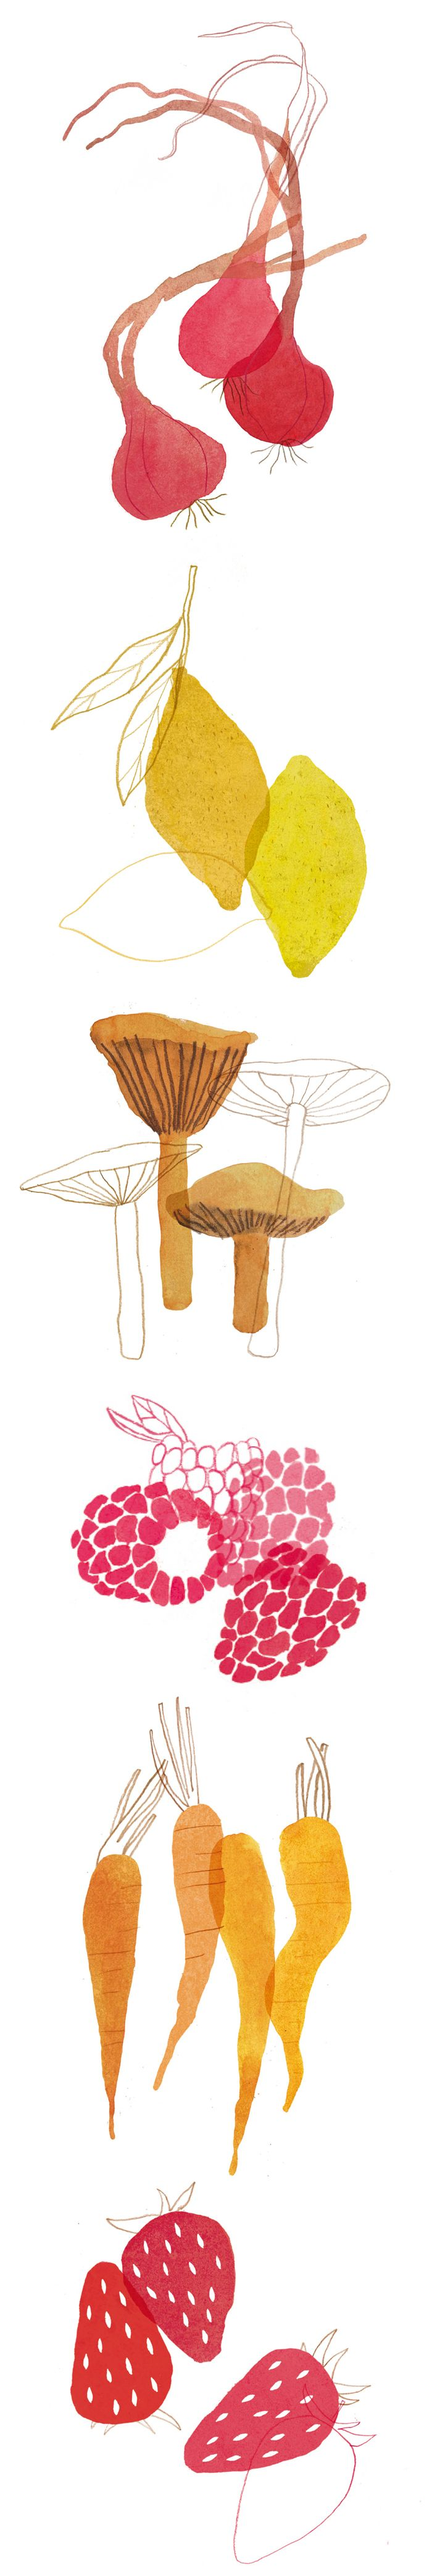 vegetable, fruit, illustration, by Nanna Prieler, layer, collage, ink, food, drawing, mushrooms, carrots, editorial, summer, colour, print